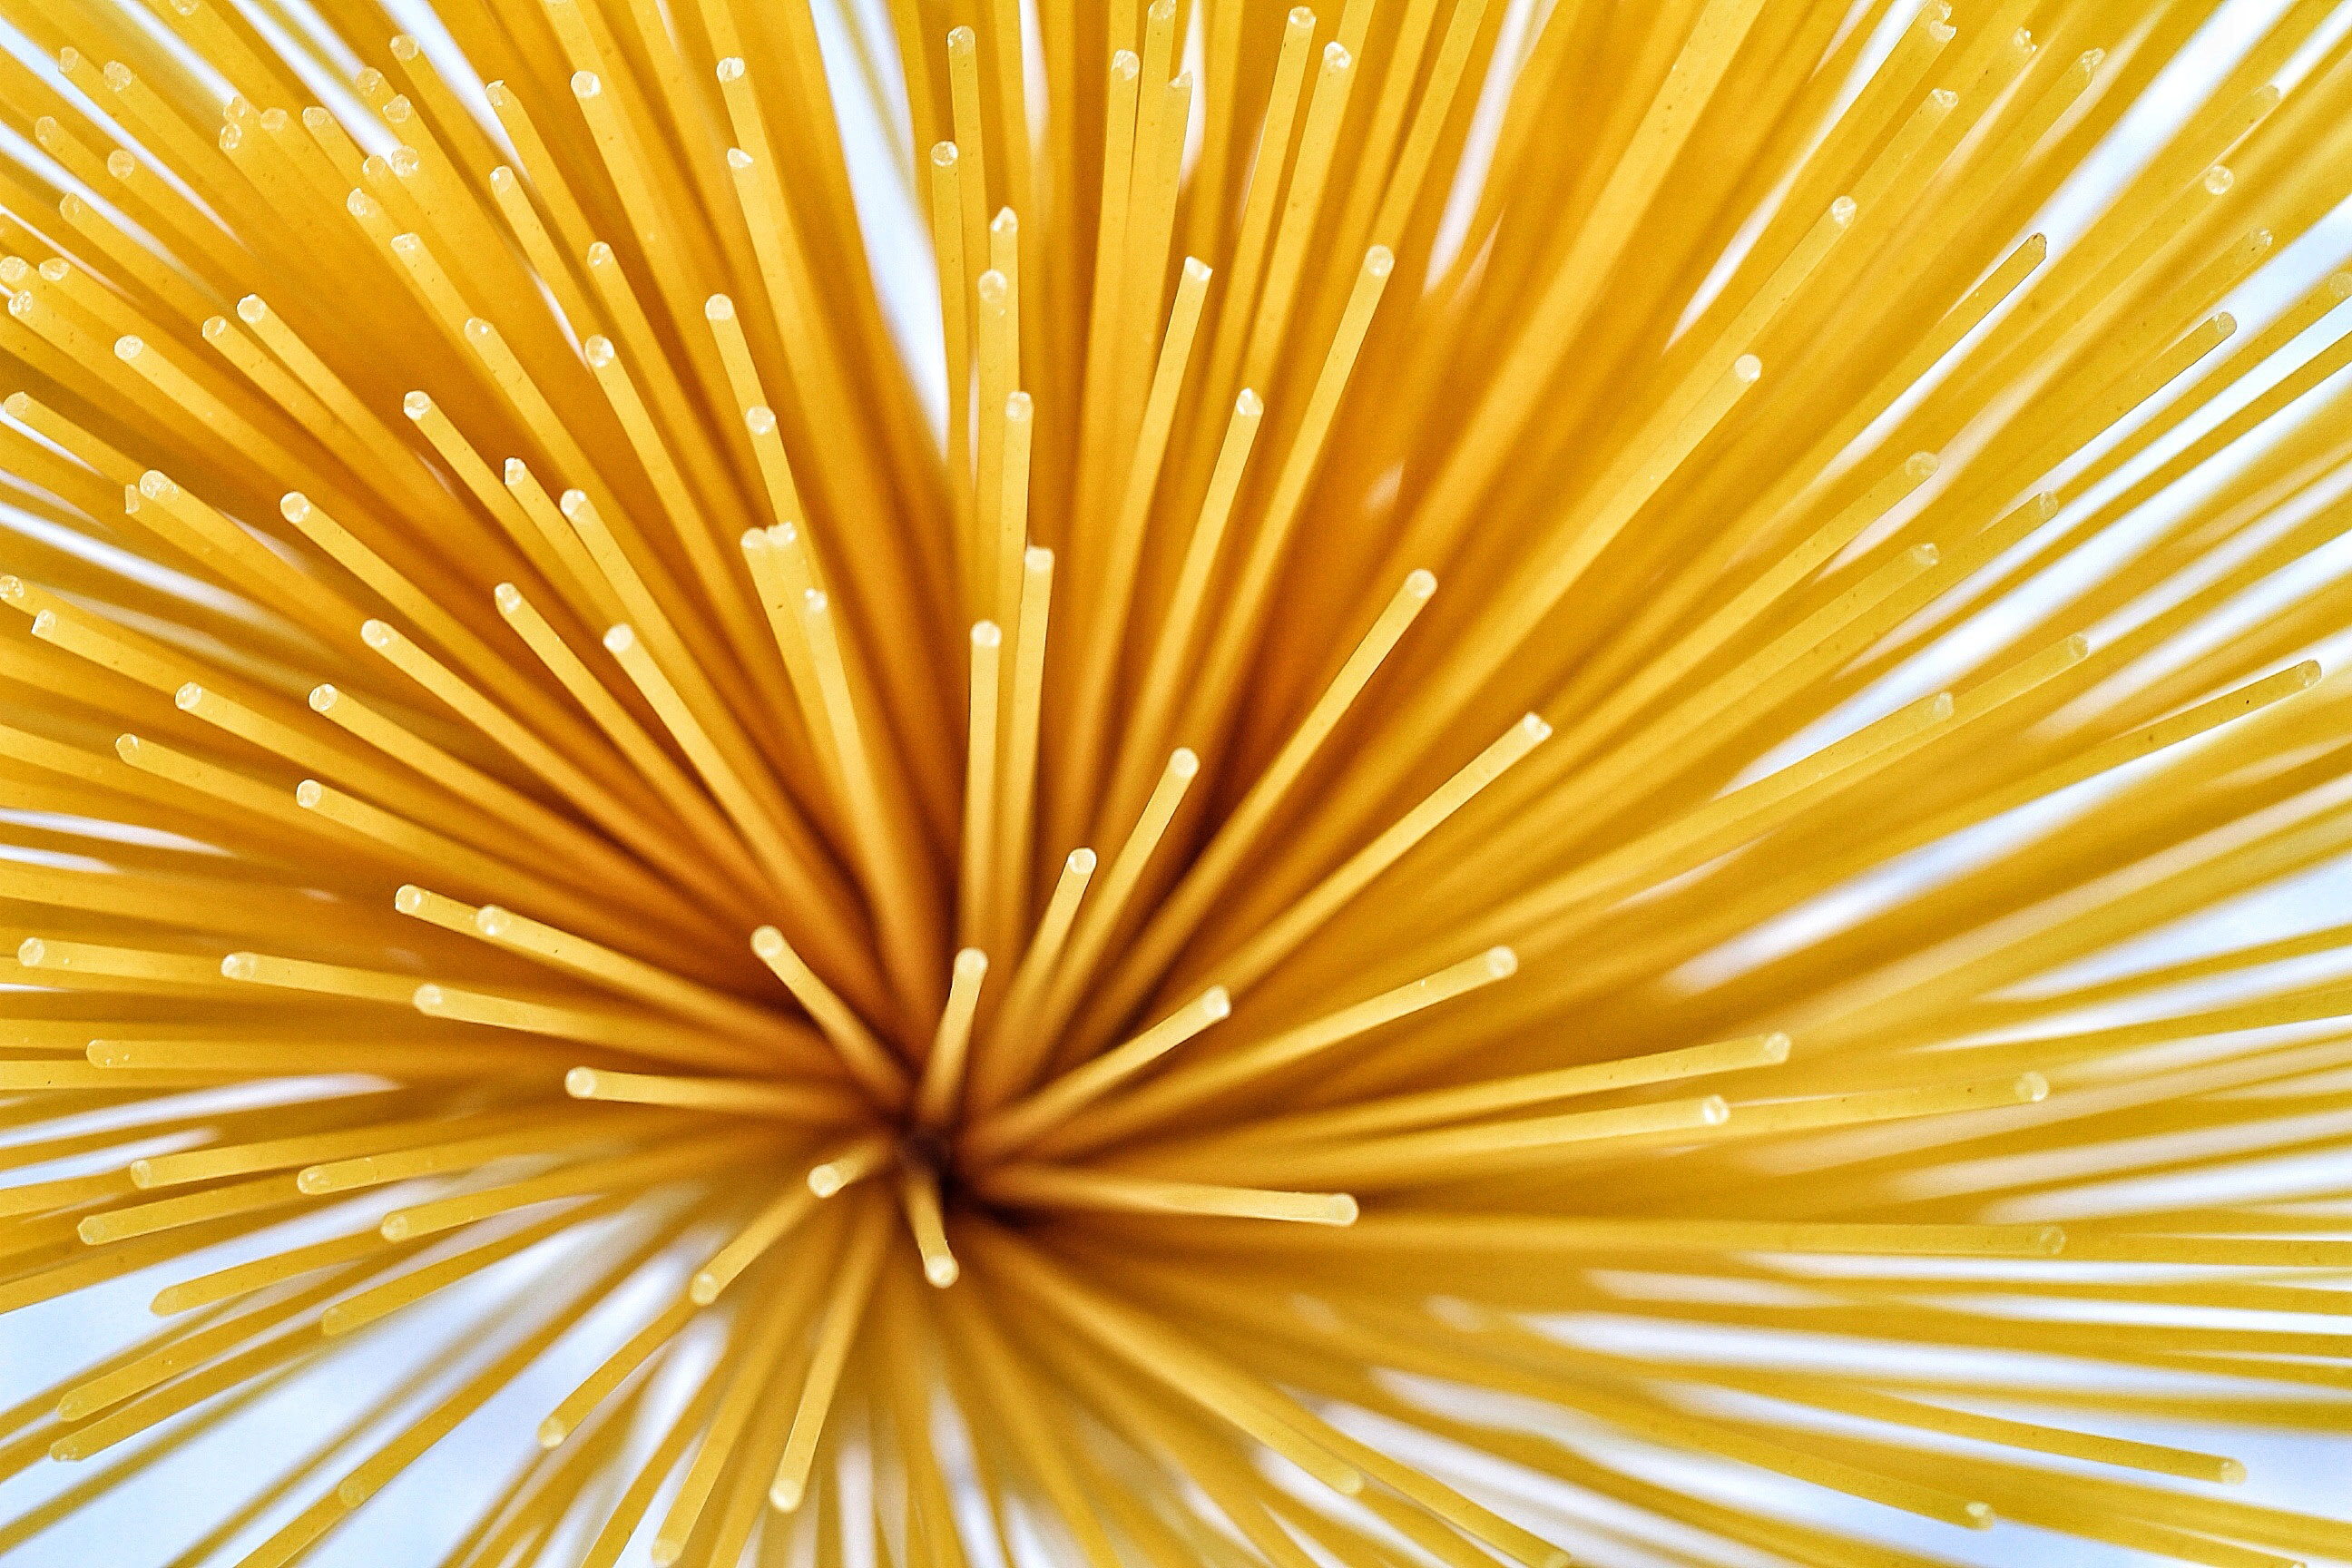 Photo of dry spaghetti